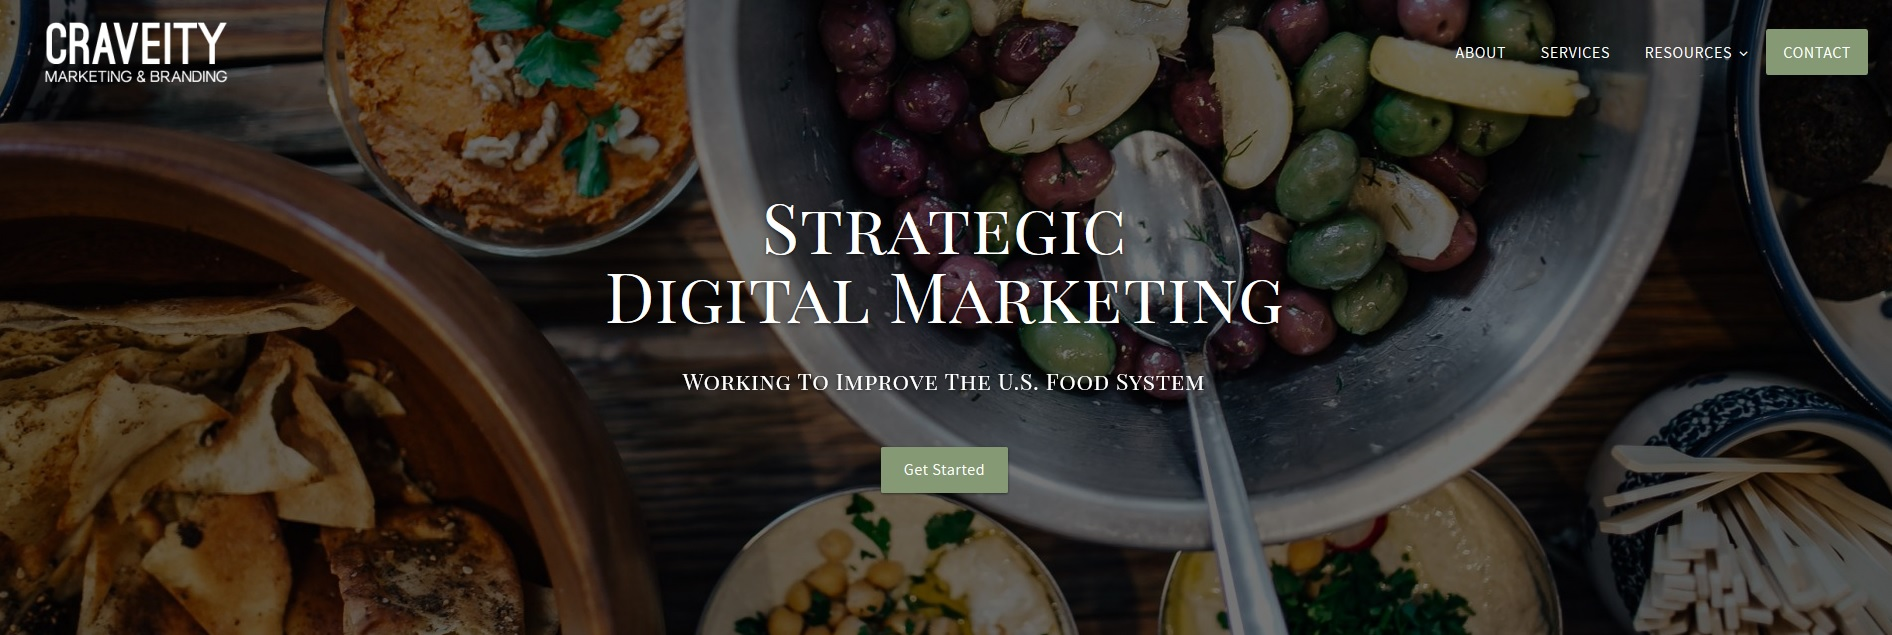 Digital-Marketers-Chicago-Case-Study-Craveity